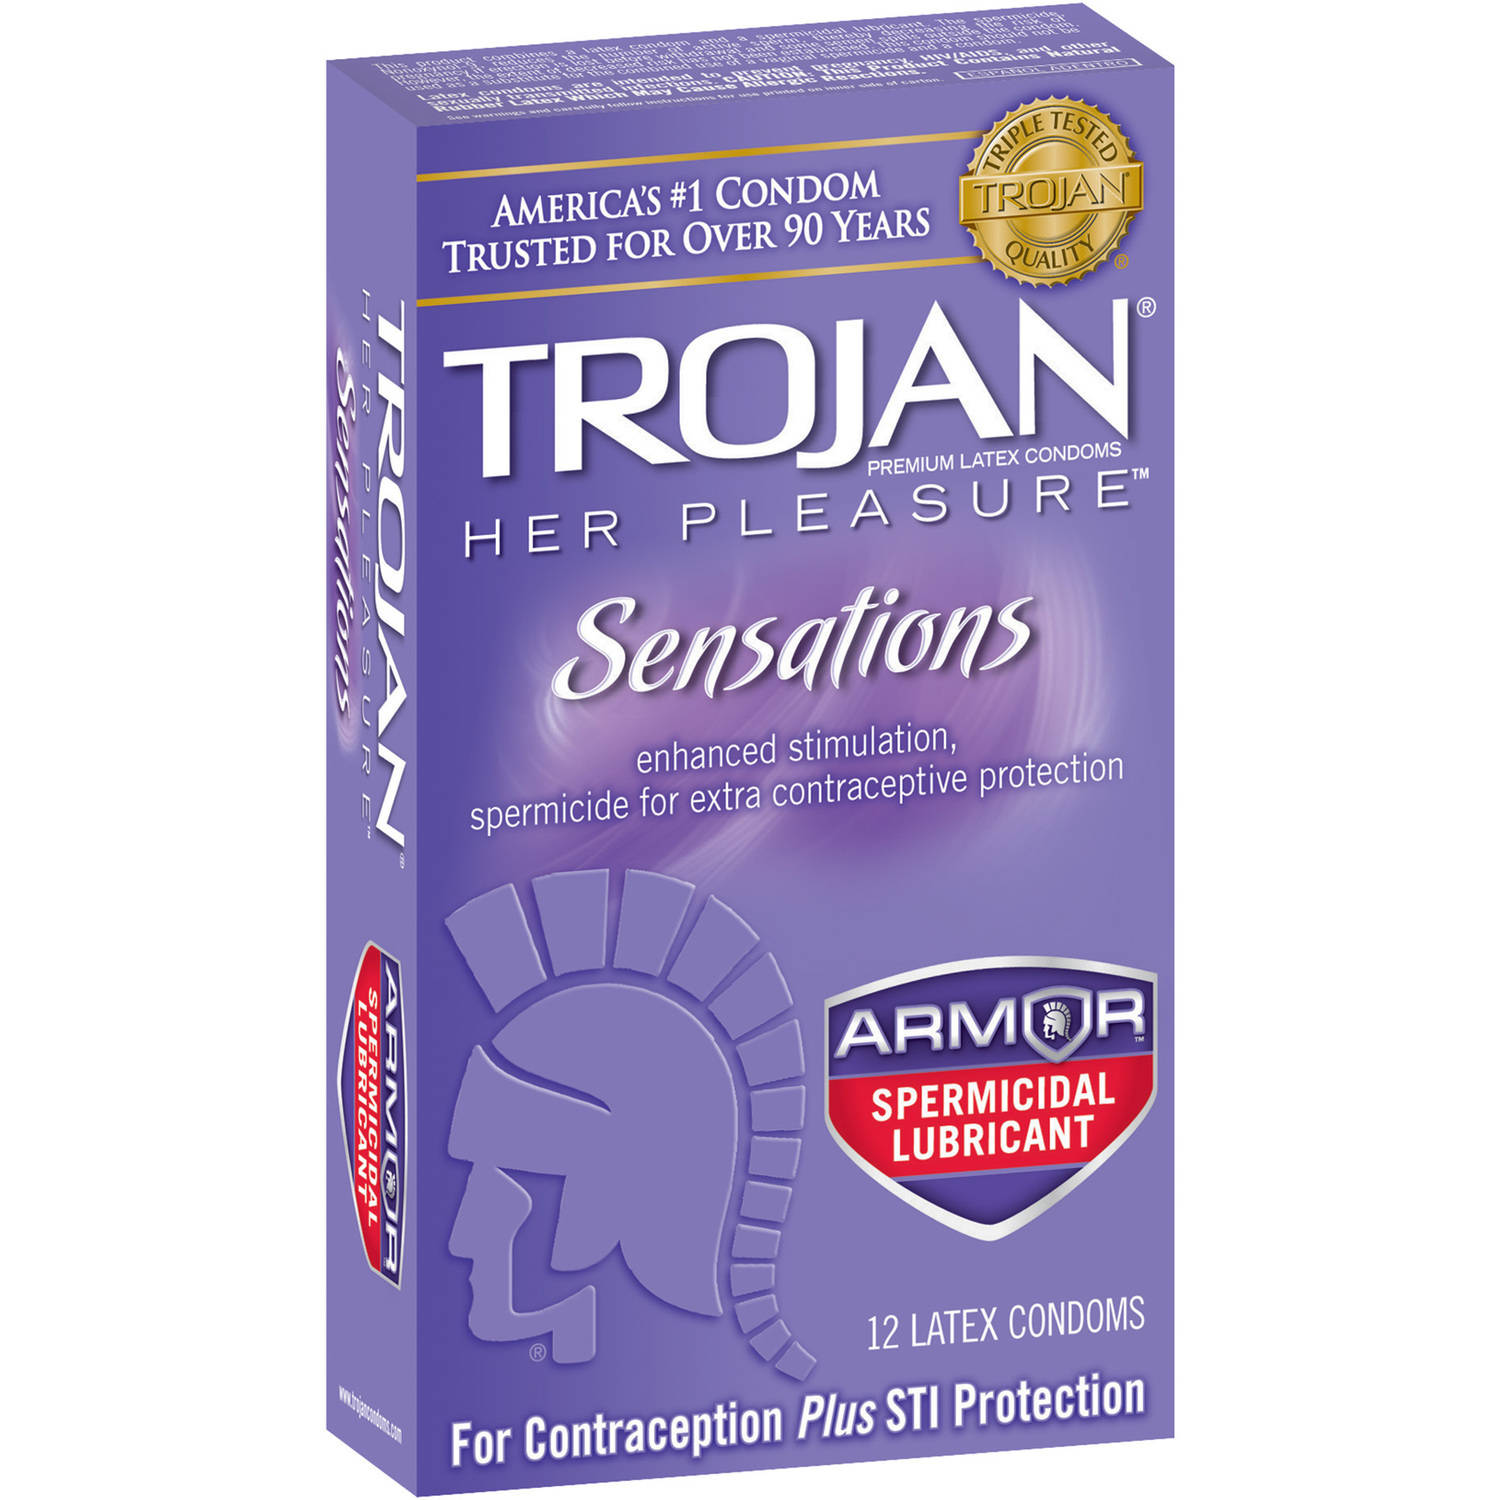 Trojan Her Pleasure Sensations Premium Latex Condoms, 12 count